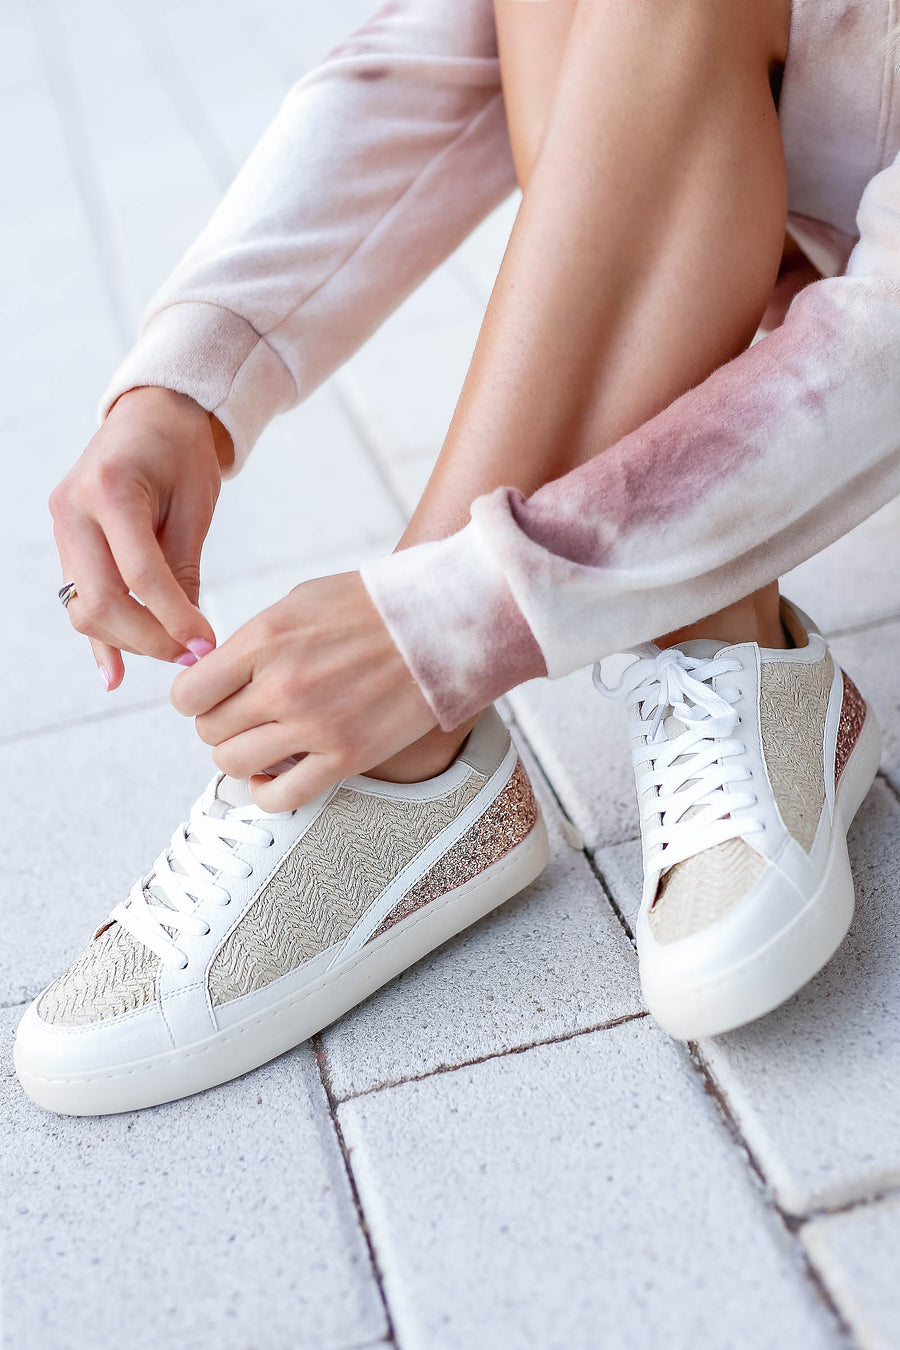 Harlow Sneakers - Beige closet candy women's trendy boho sneakers with straw and glitter contrast 1